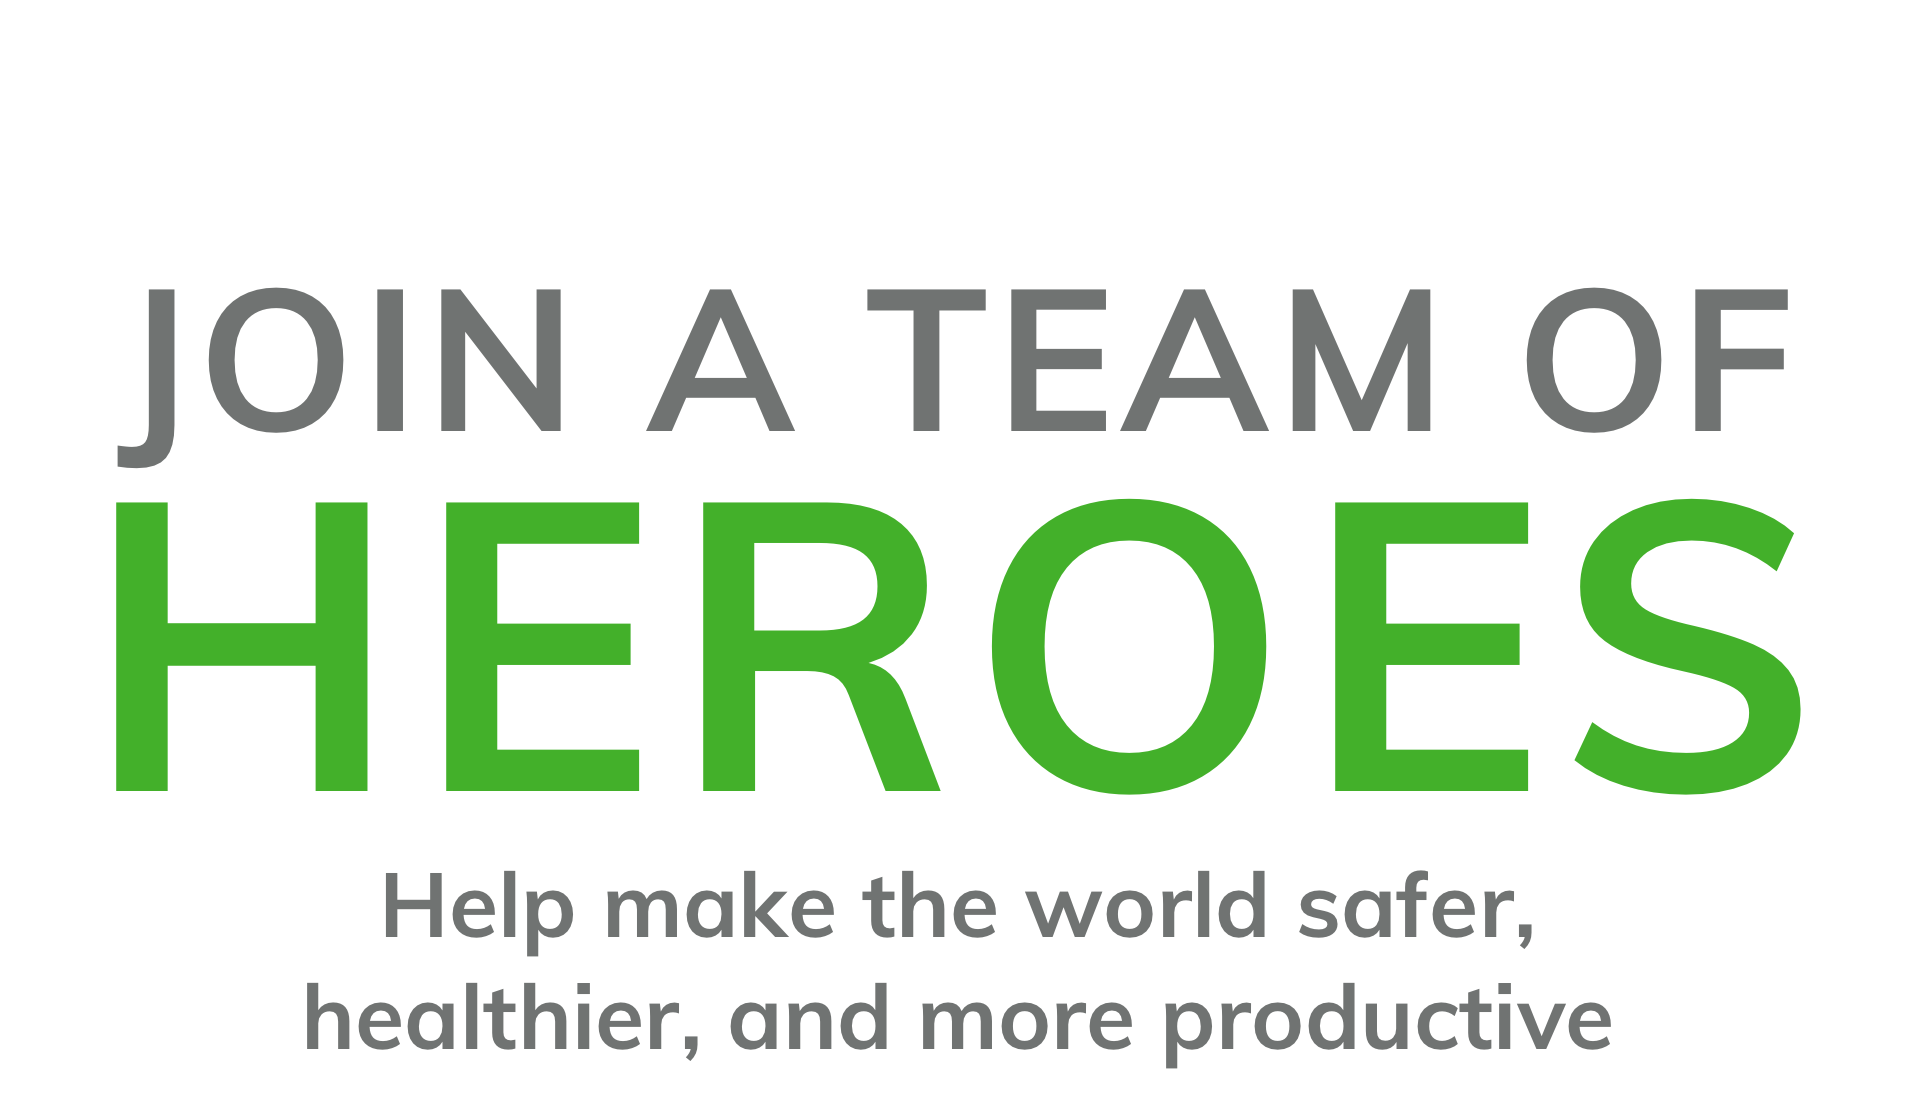 Join a team of heroes